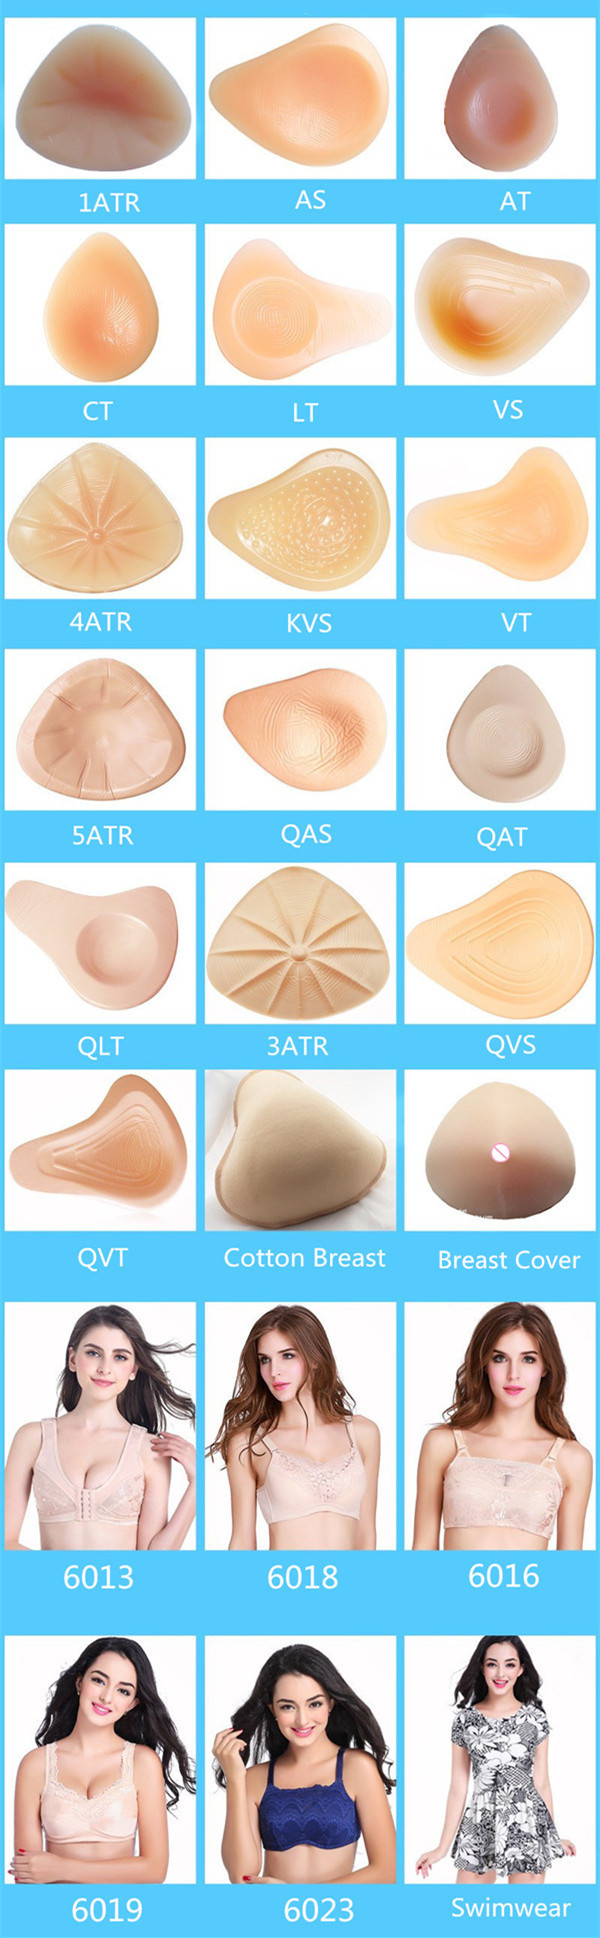 ONEFENG Prosthesis Breast Real Nude Beautiful Women Silicone Bras for Mastectomy Ladies Top Selling 300g/pc Boobs